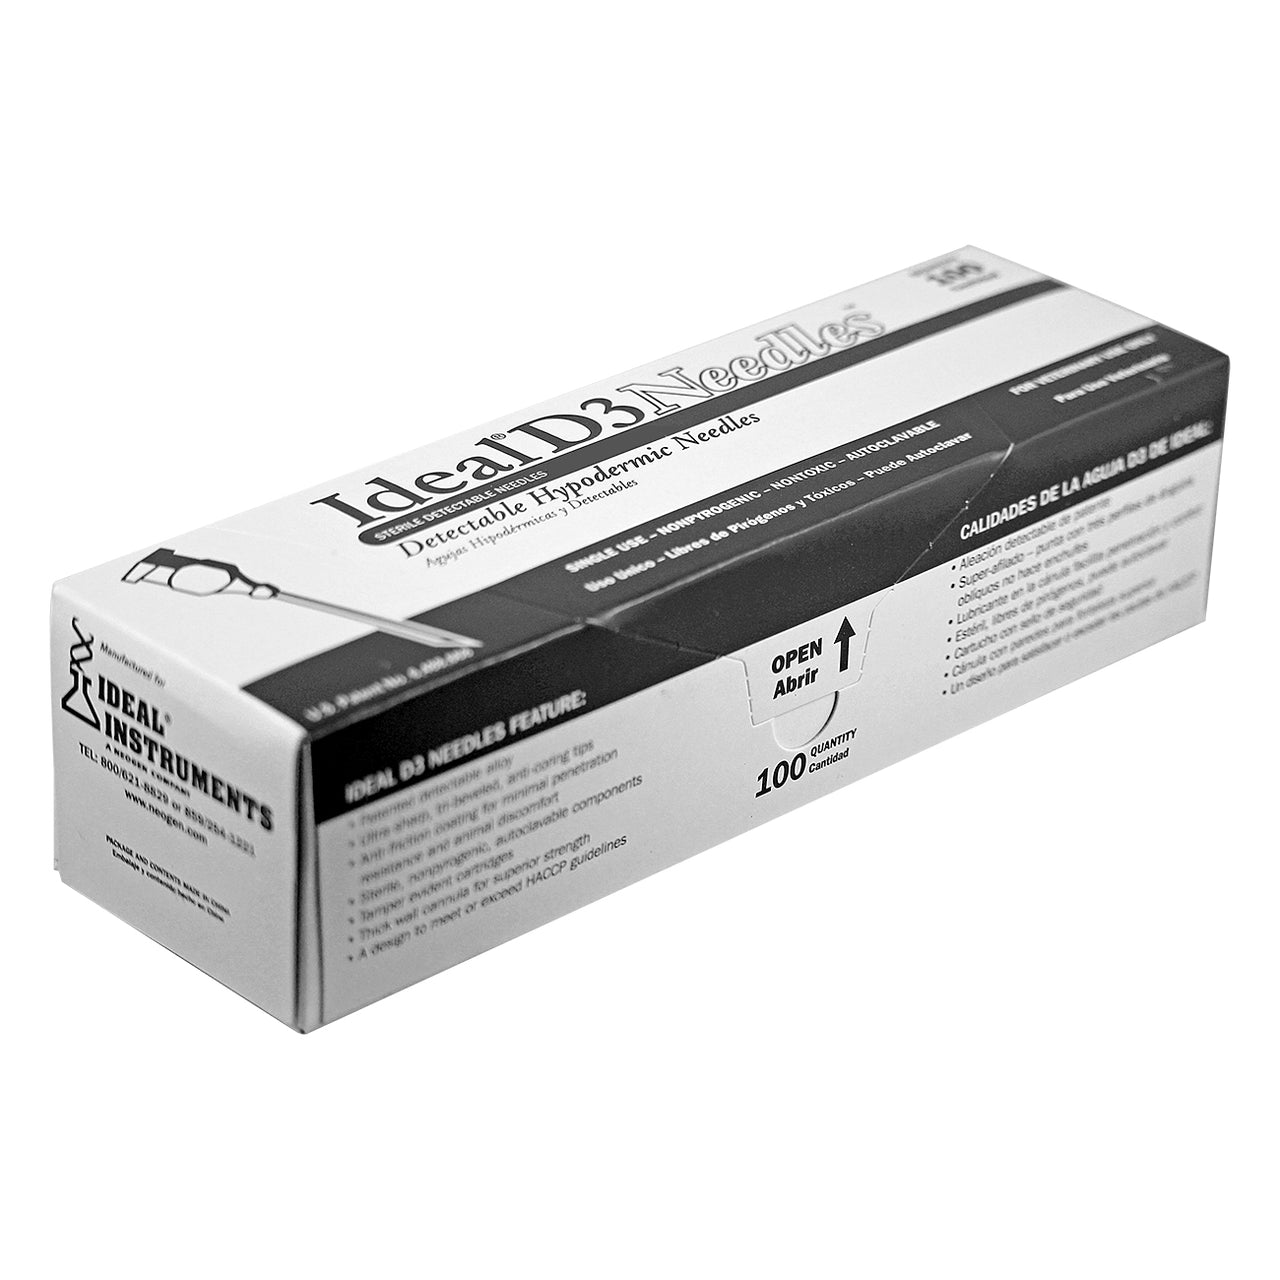 Ideal aluminum hub needle (100 per box) 16 X 3/4